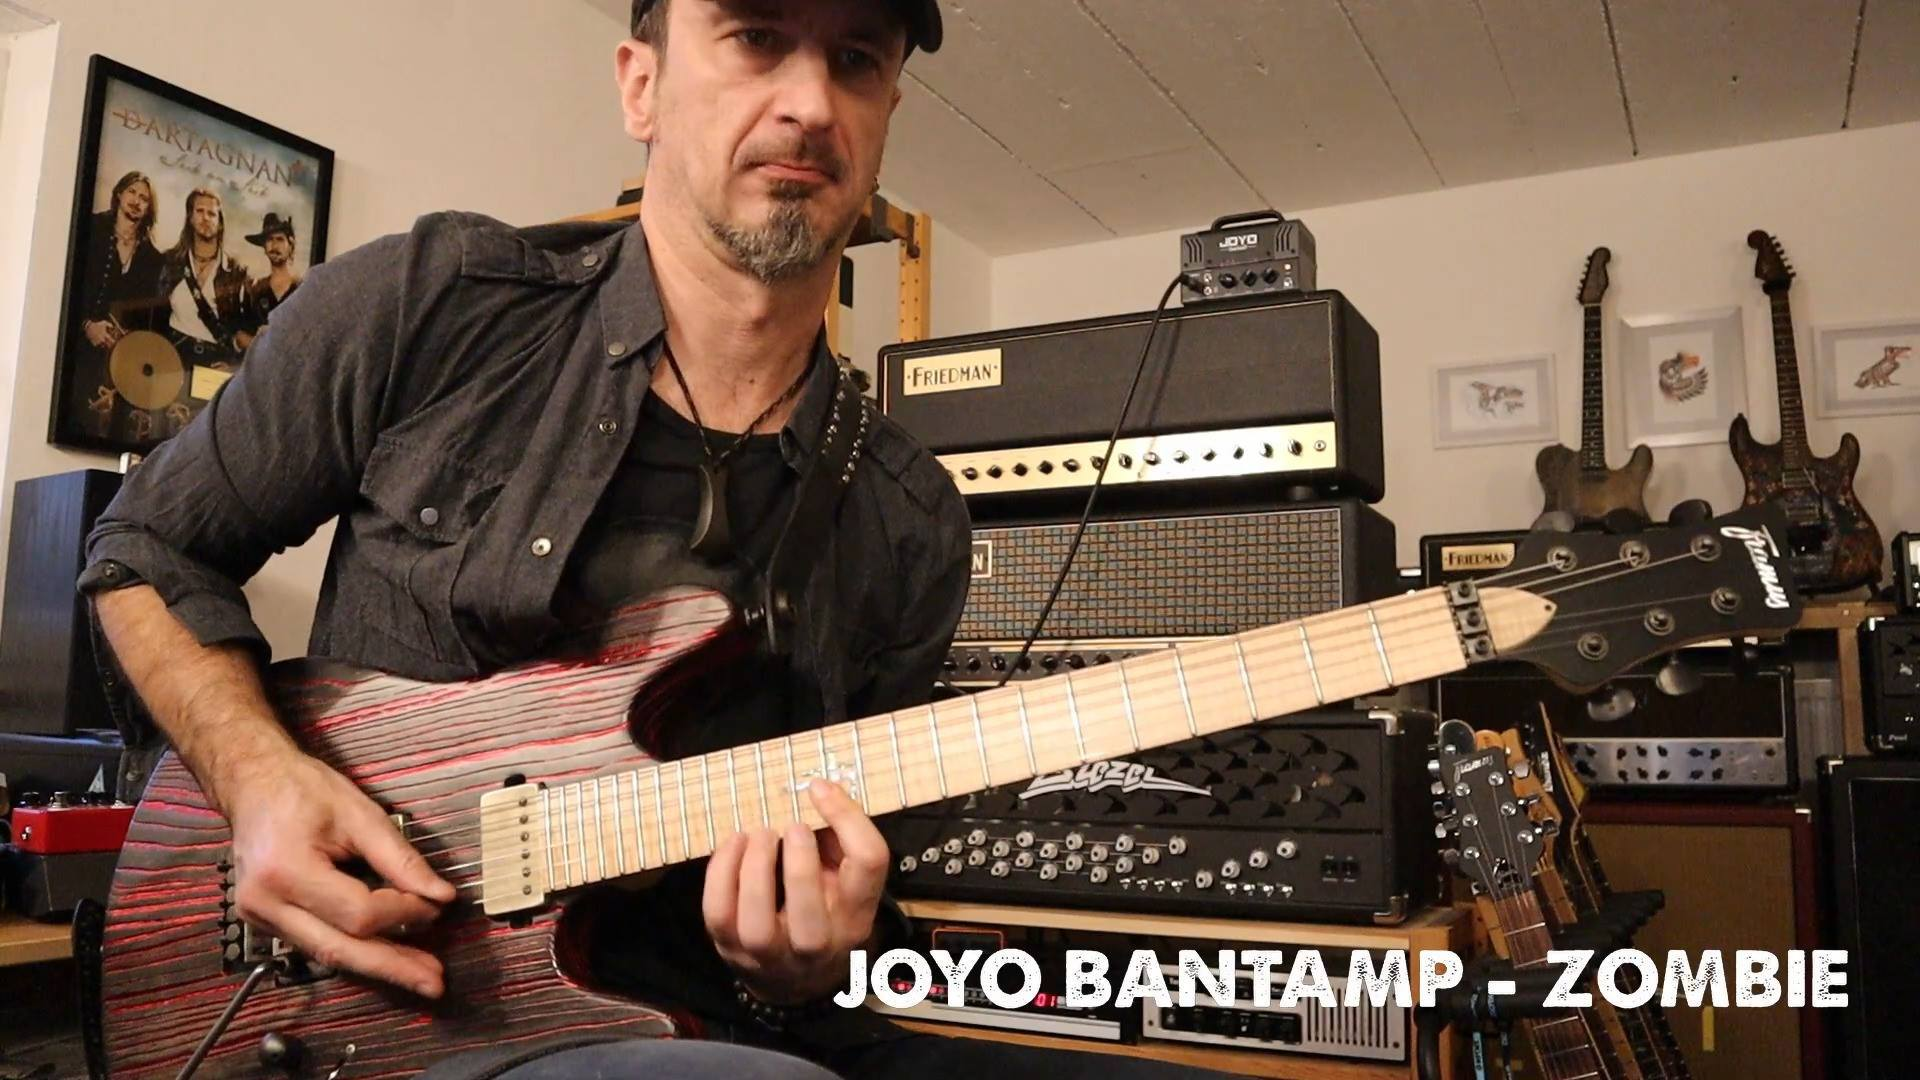 Joyo artist Hans Platz shredding with Bantamp Zombie, that launch box sitting on the top.